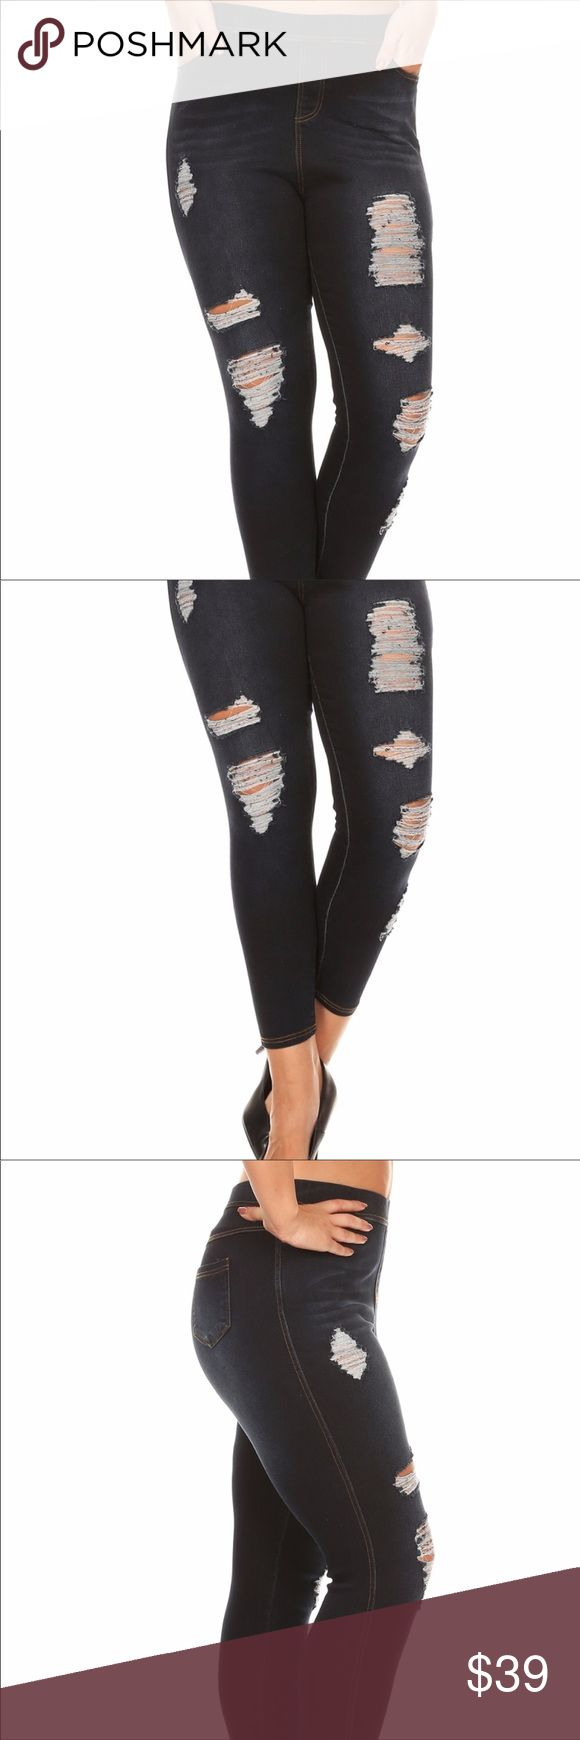 """Stretchy Distressed Denim For Curvy Ladies Front Rise 12 inches  Back Rise 15 inches Inseam 28 inches 1X waist 17 inches laying flat not circumference  2X waist 18 inches laying flat not circumference  3X waist 19 inches laying flat not circumference  These jeans are very slimming and comfortable but do run a size down. I normally would wear a 2X in this design but had to wear a 3X. I am 5'10"""" these jeans fit like capris on me. I love them they really accentuate my curves. Shosho Jeans…"""